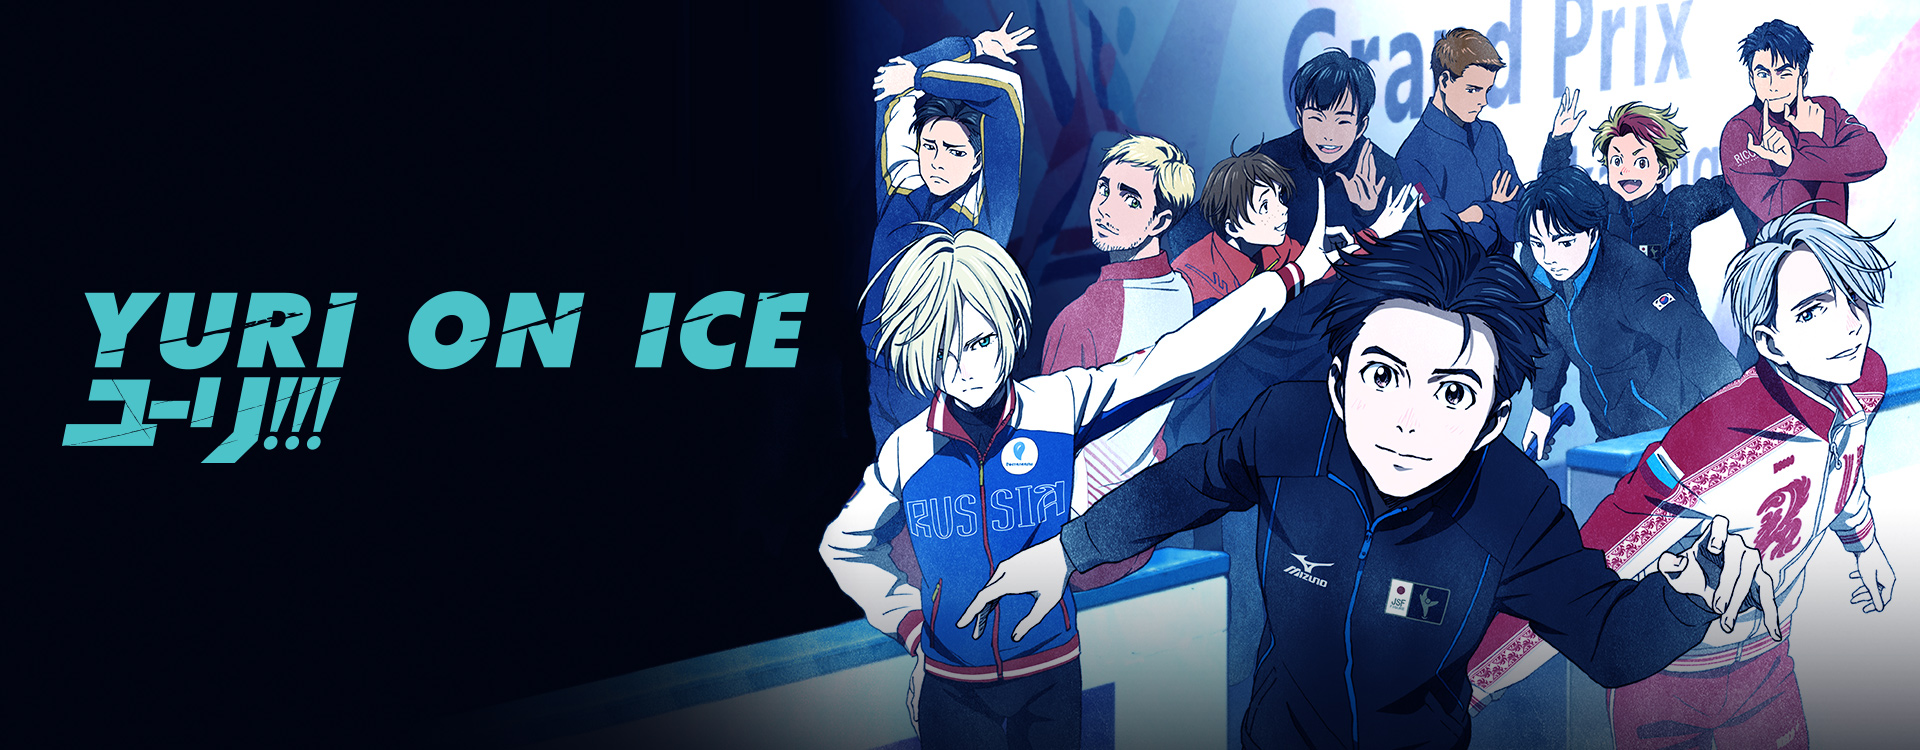 Watch Yuri!!! On Ice Episodes Dub | Comedy, Slice of Life Anime ...